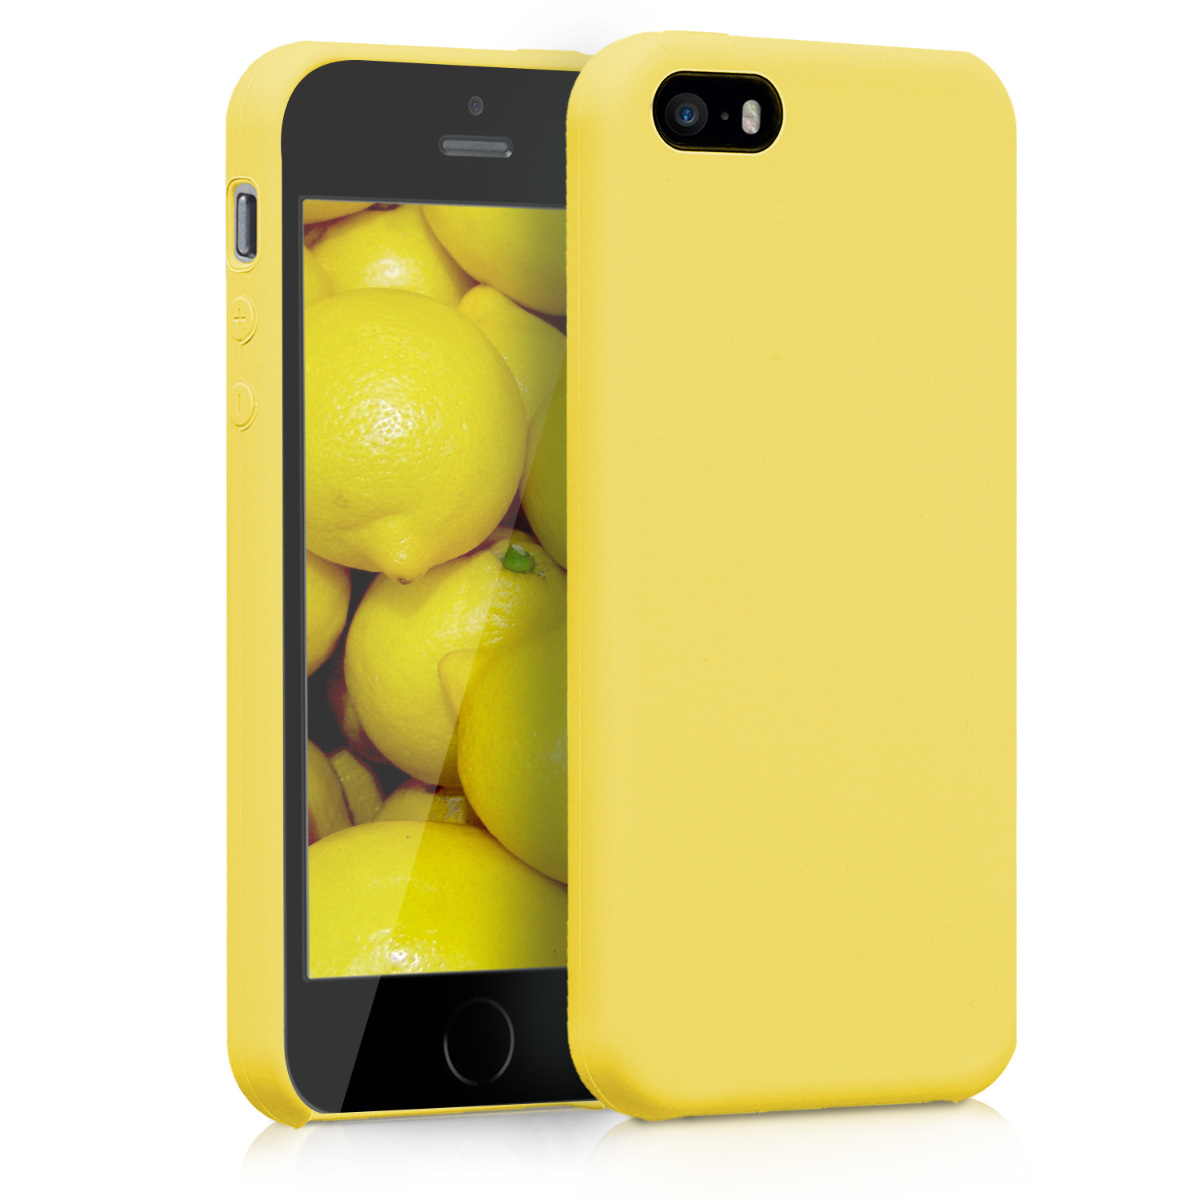 KW TPU Θήκη Σιλικόνης Apple iPhone SE / 5 / 5S - Soft Flexible Rubber - Yellow Matte (42766.49)